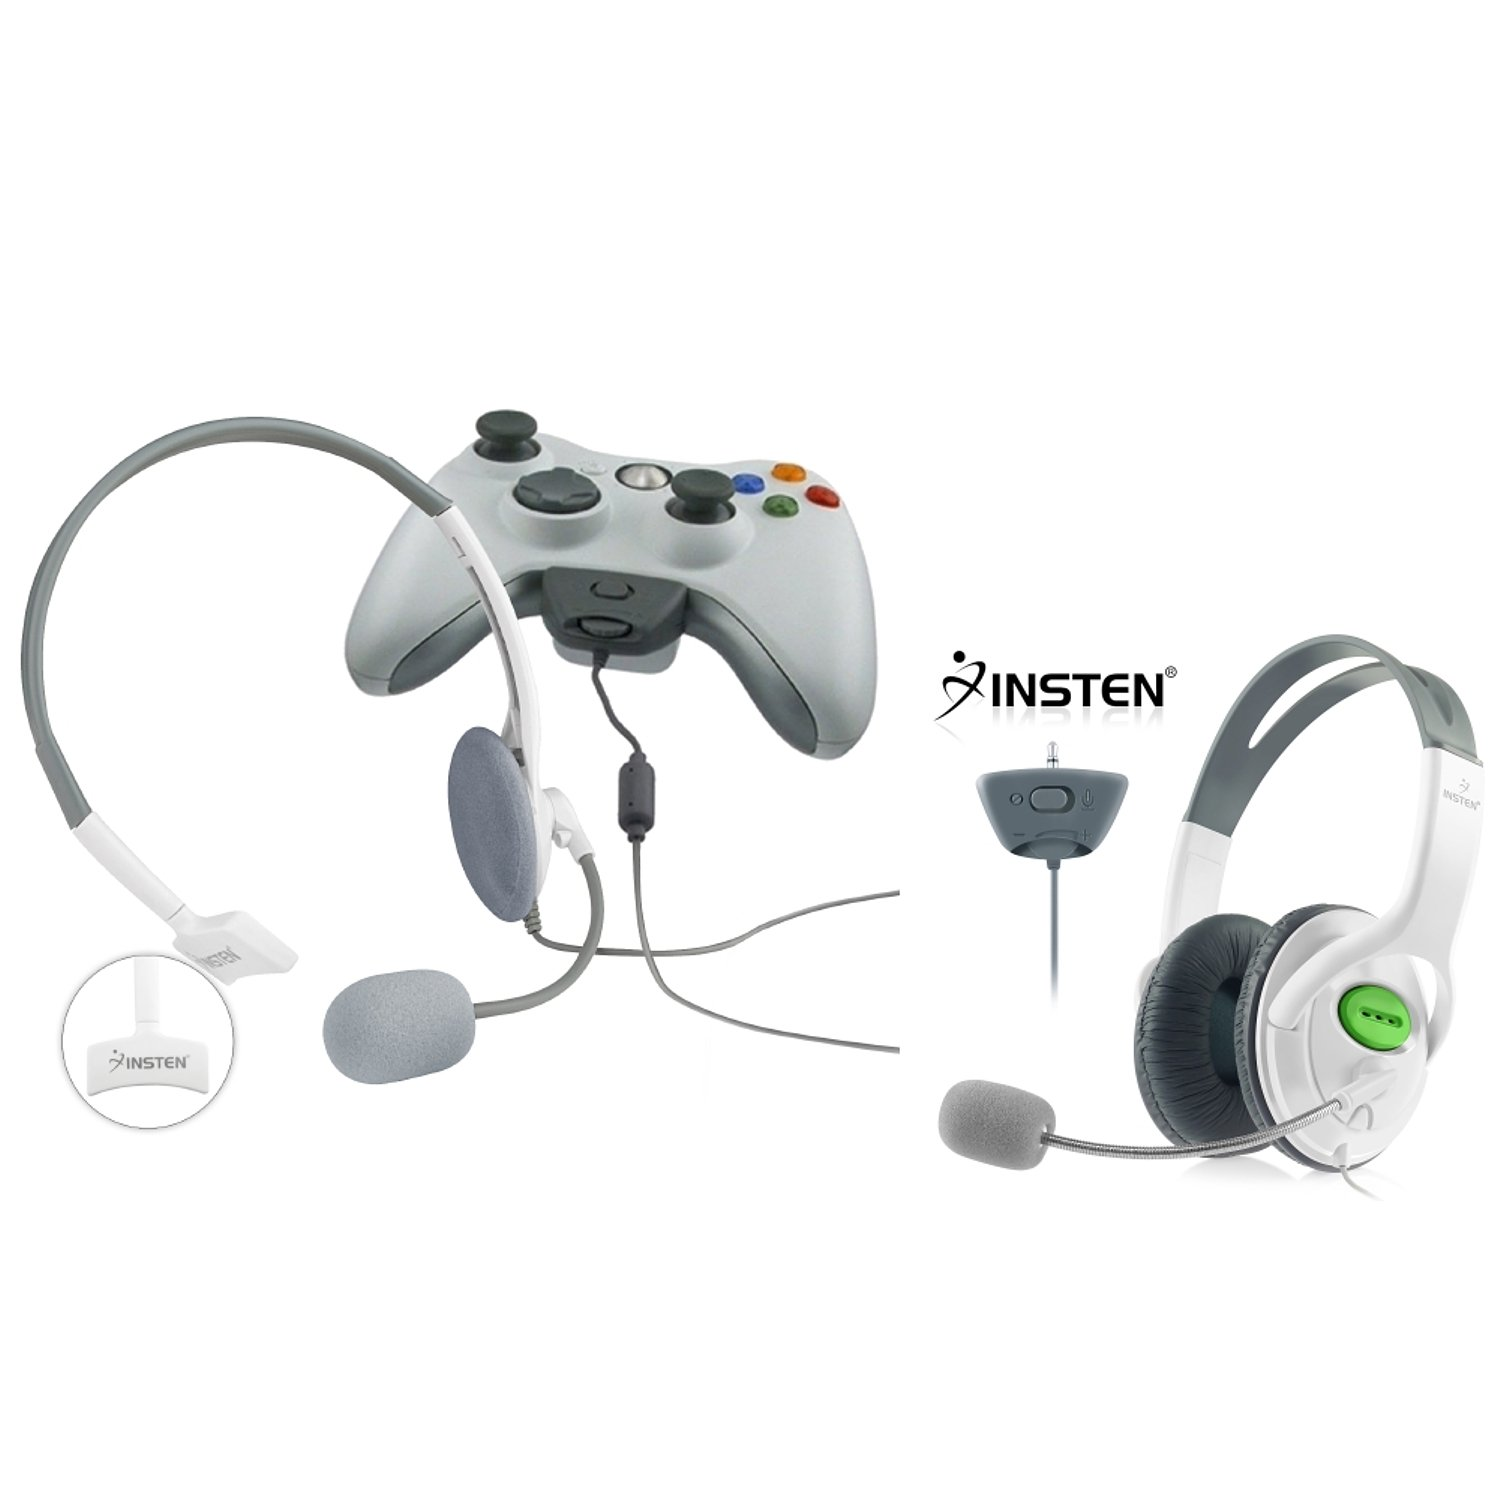 Insten 2 Pack Gaming Chat Live Headset With Microphone Compatible With XBOX 360 / Xbox 360 Slim Wireless Controller M by INSTEN